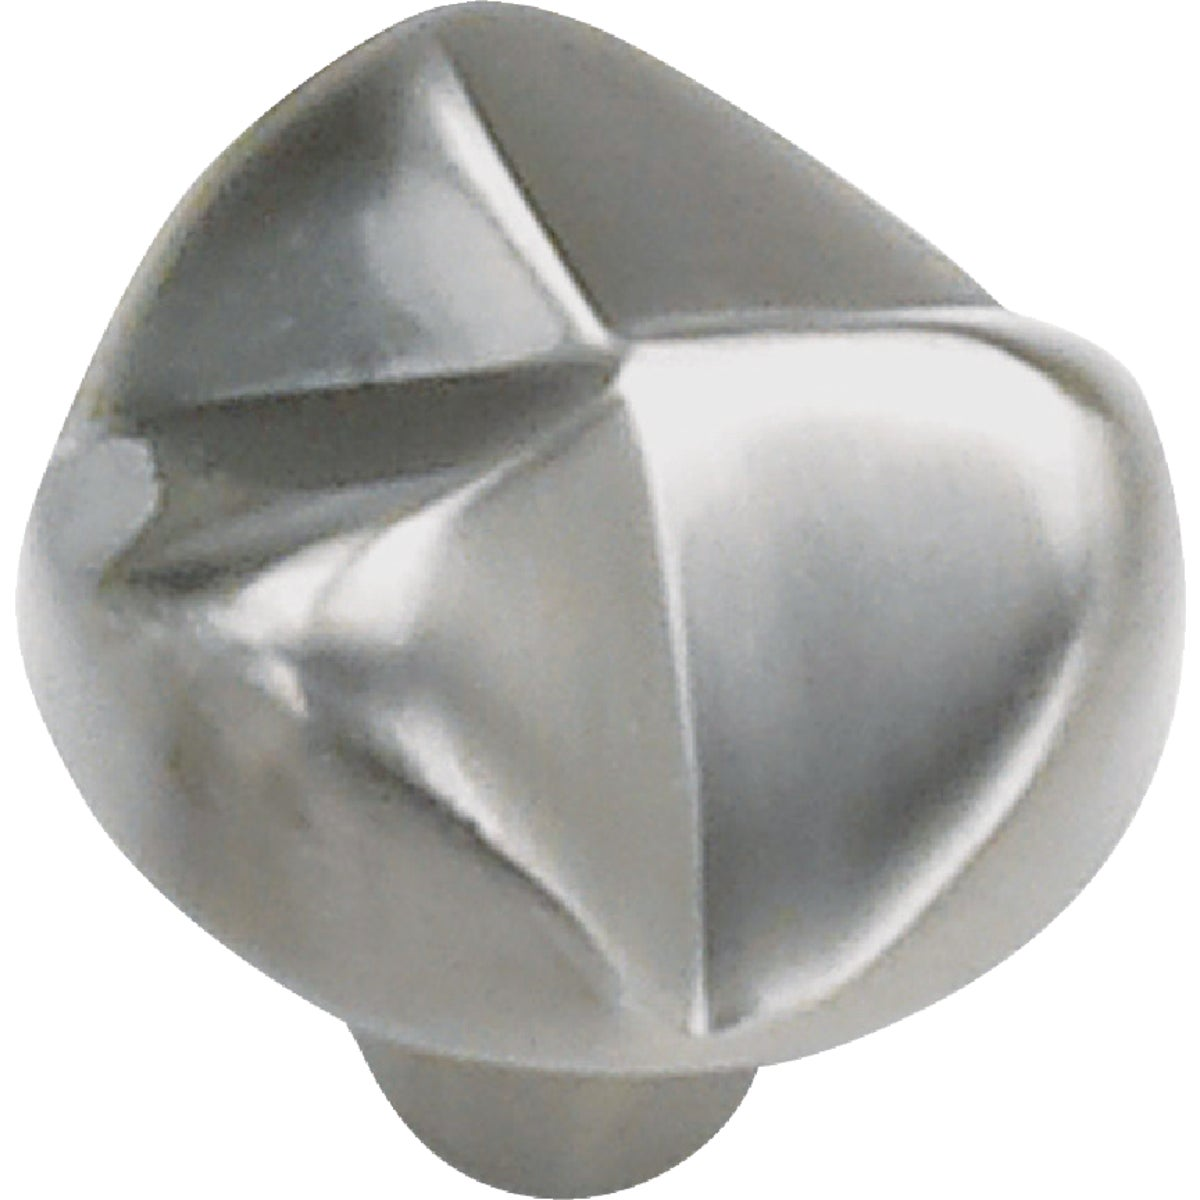 1-1/2 SATIN NICKEL KNOB - 15759 by Laurey Co